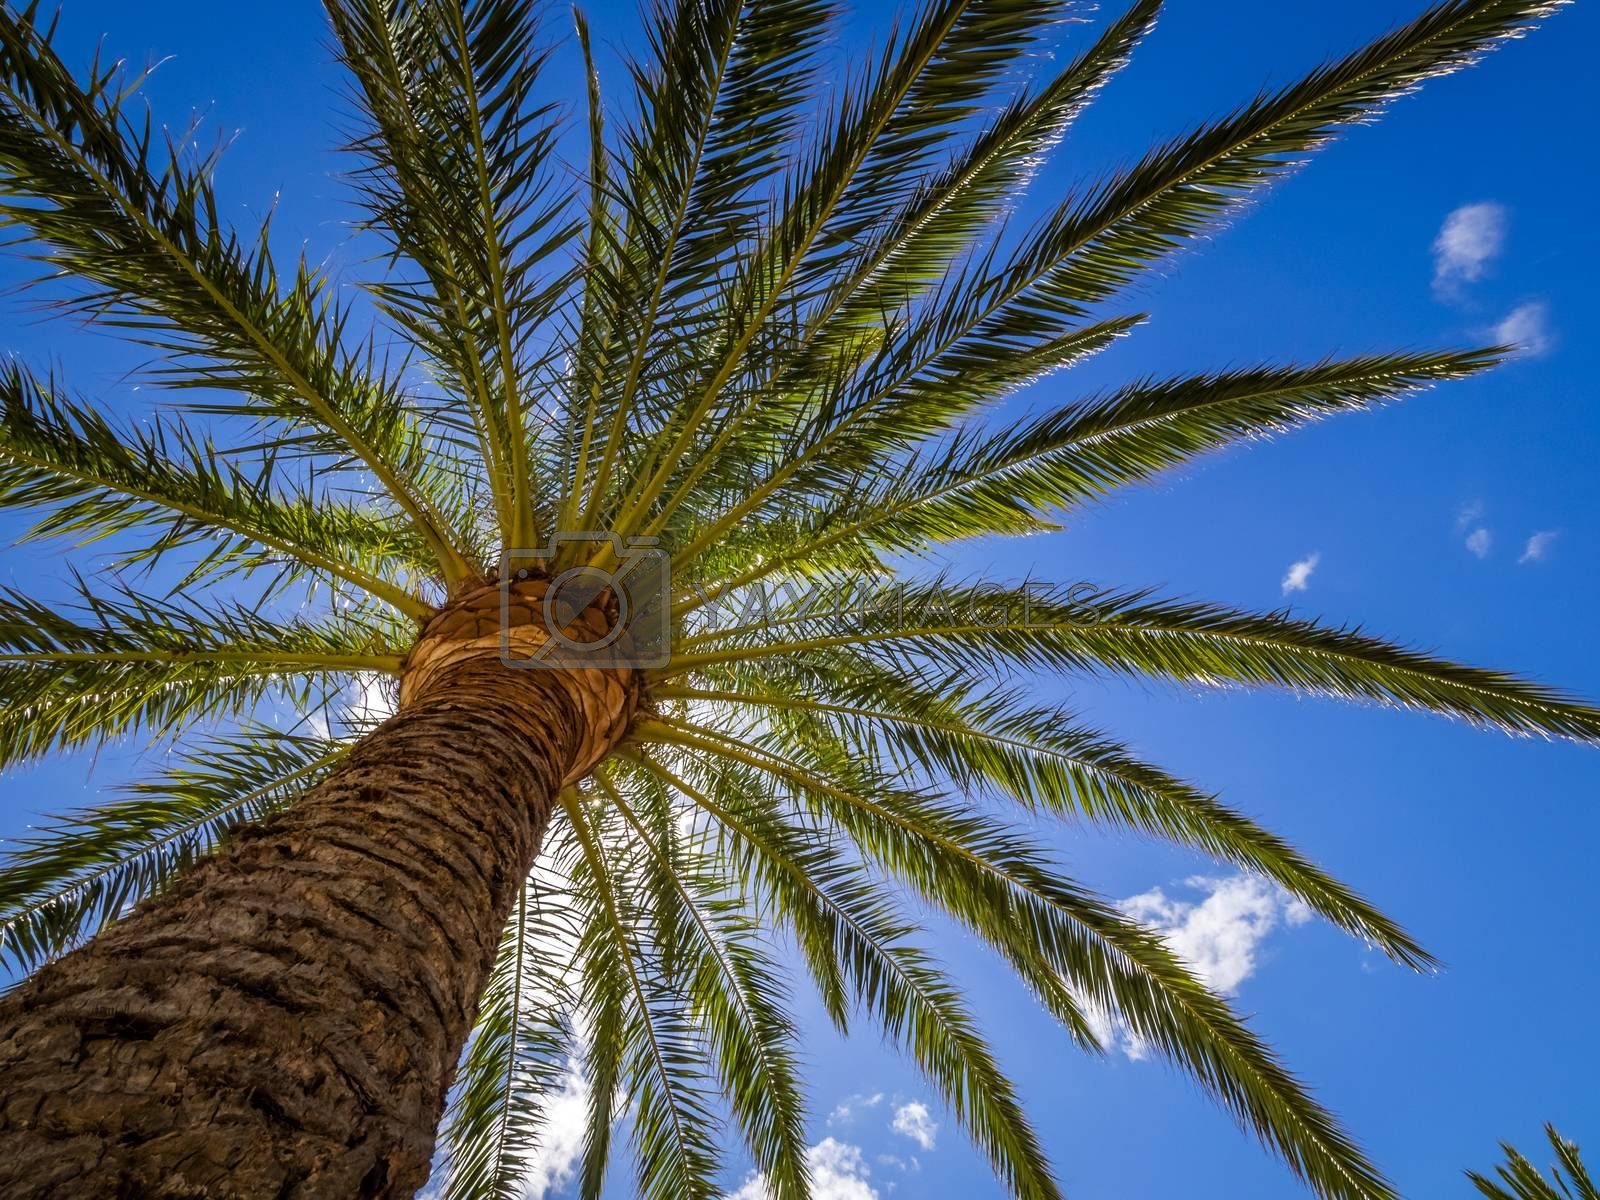 Tall tropical palmtree with the blue sky in the background